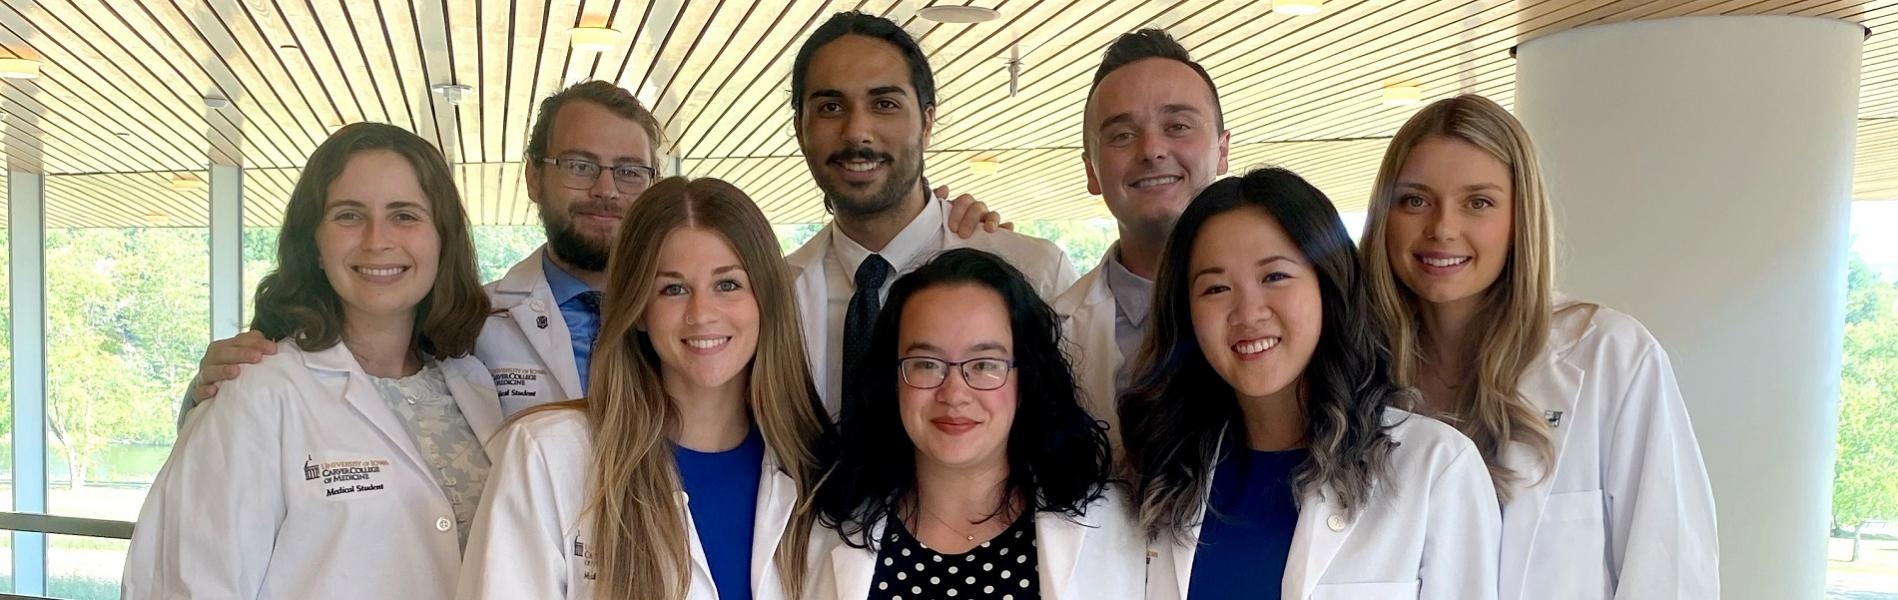 2021 Incoming MSTP Students at the CCOM White Coat Ceremony